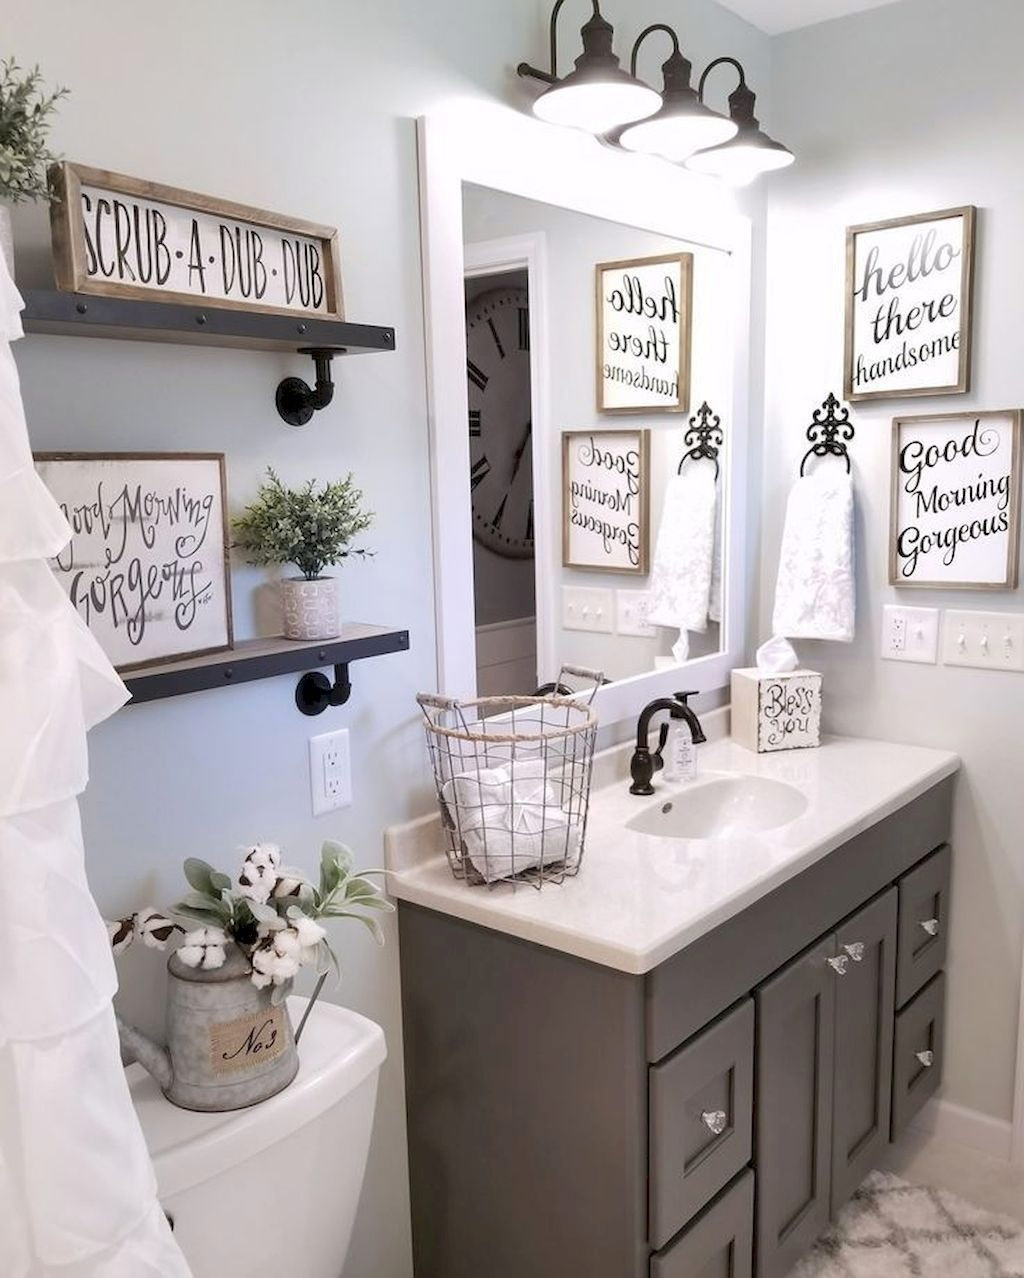 quick & easy bathroom decorating tips | sofas & more online intended for Decorating The Bathroom